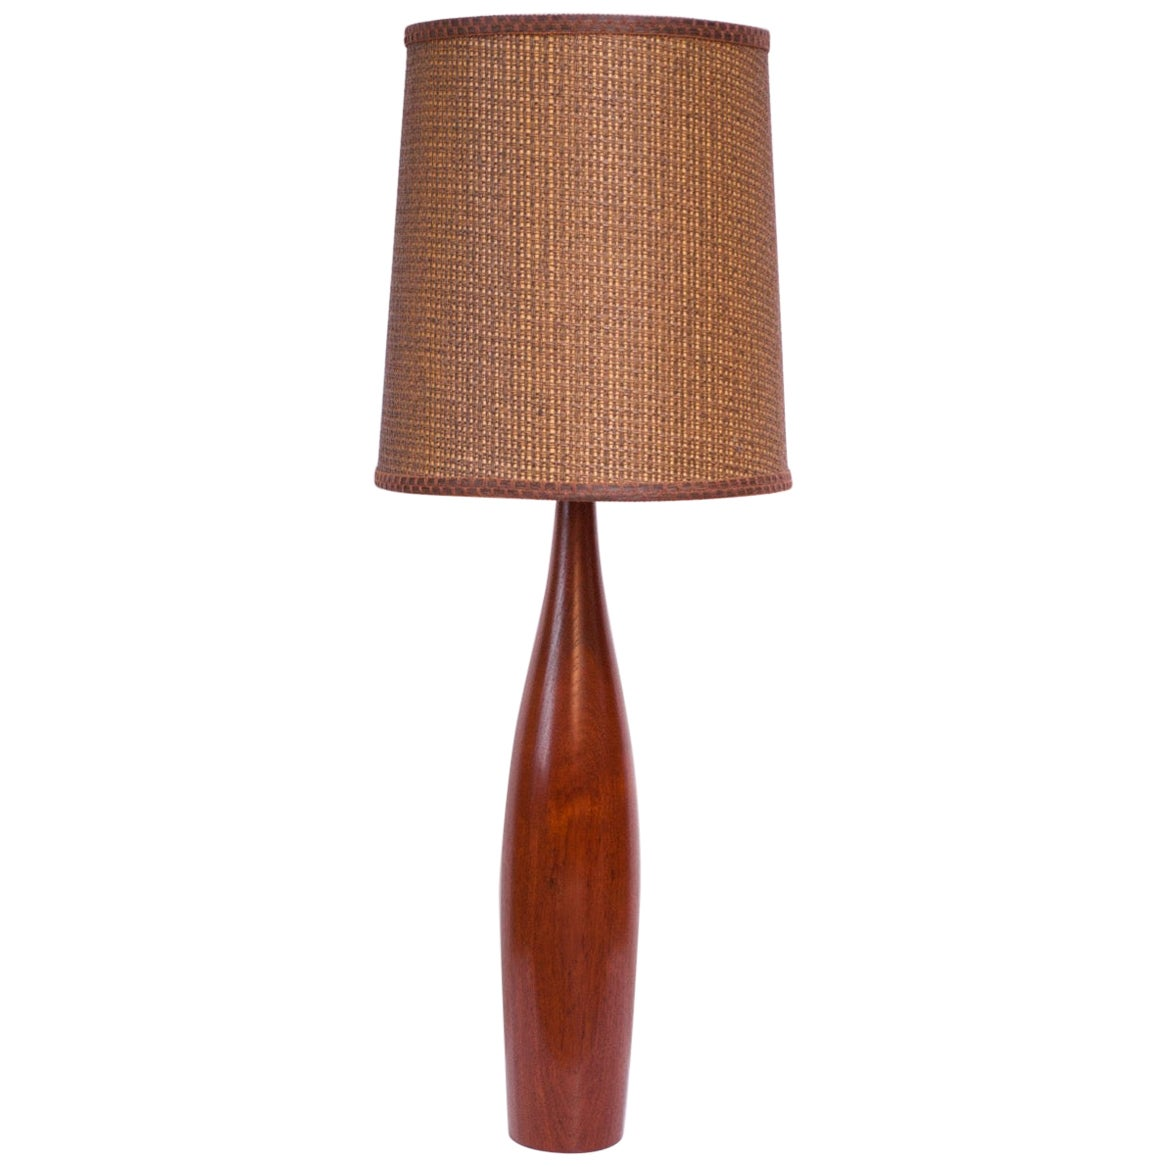 Tall Danish Modern Turned Teak Lamp by ESA